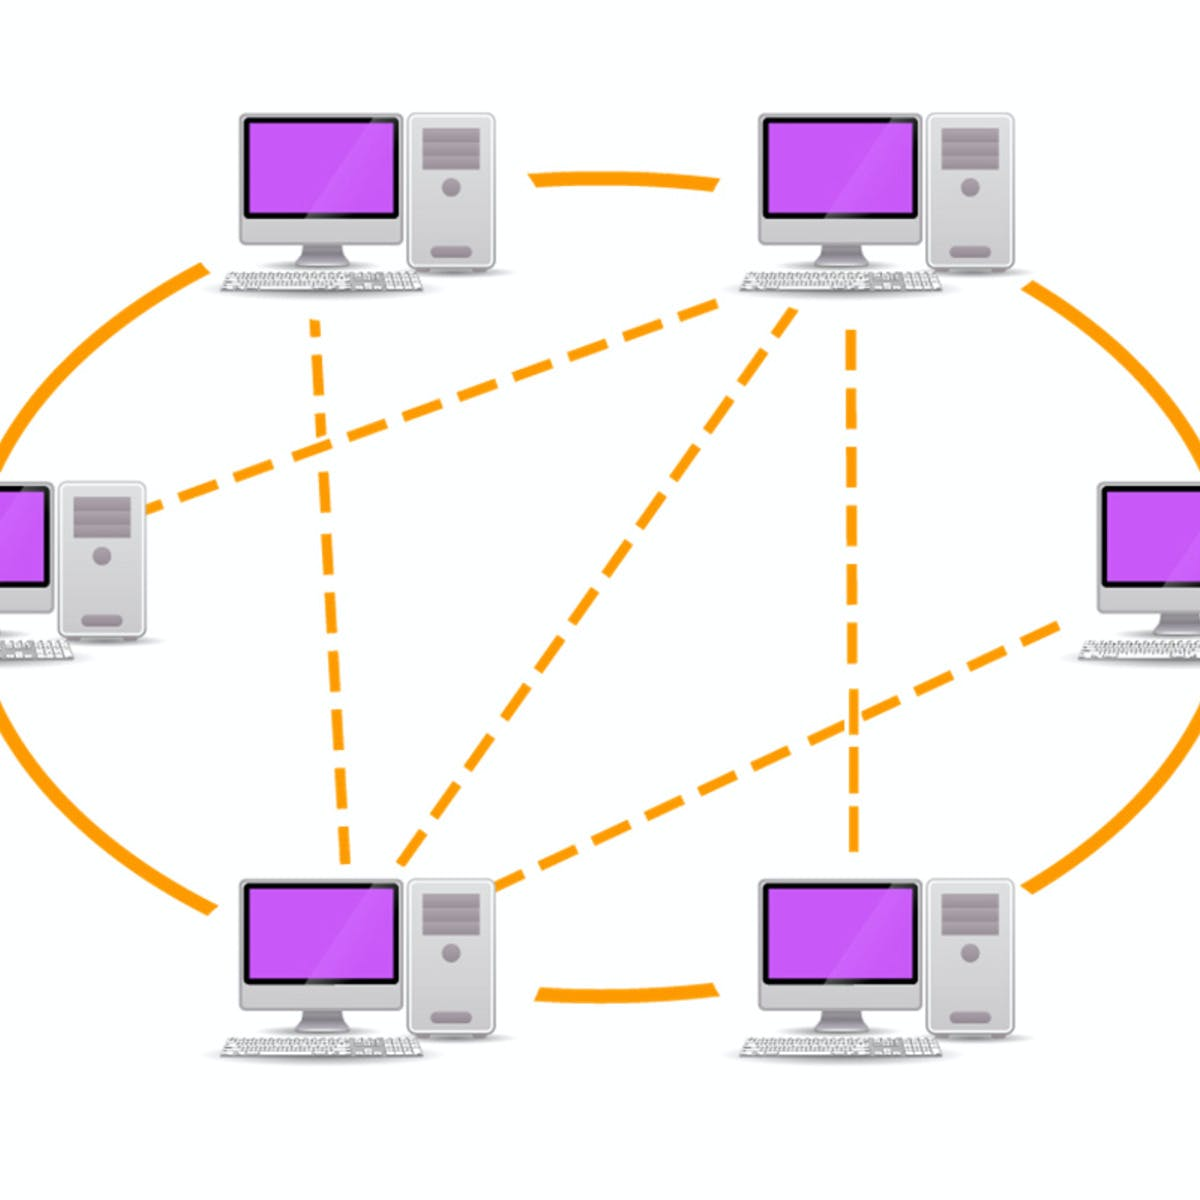 peer to peer protocols and local area networks coursera